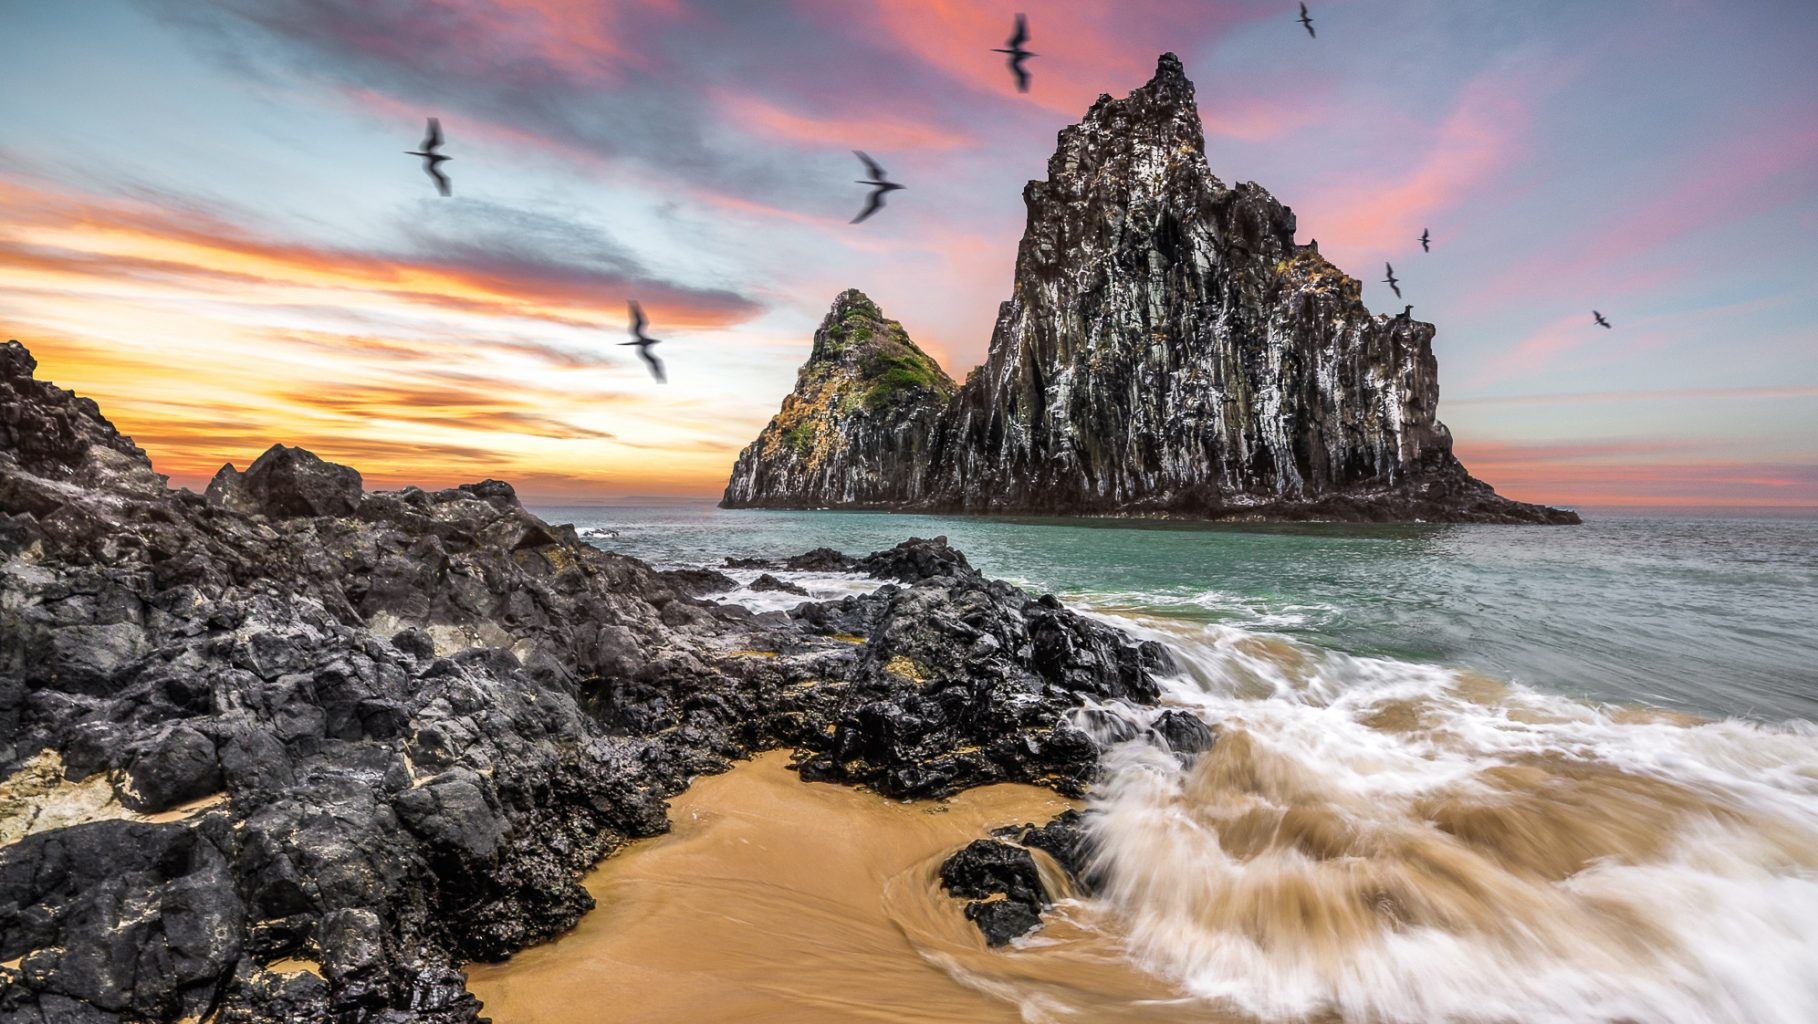 Image: Sea Birds Swirl around a beach overlooking a rocky outcrop